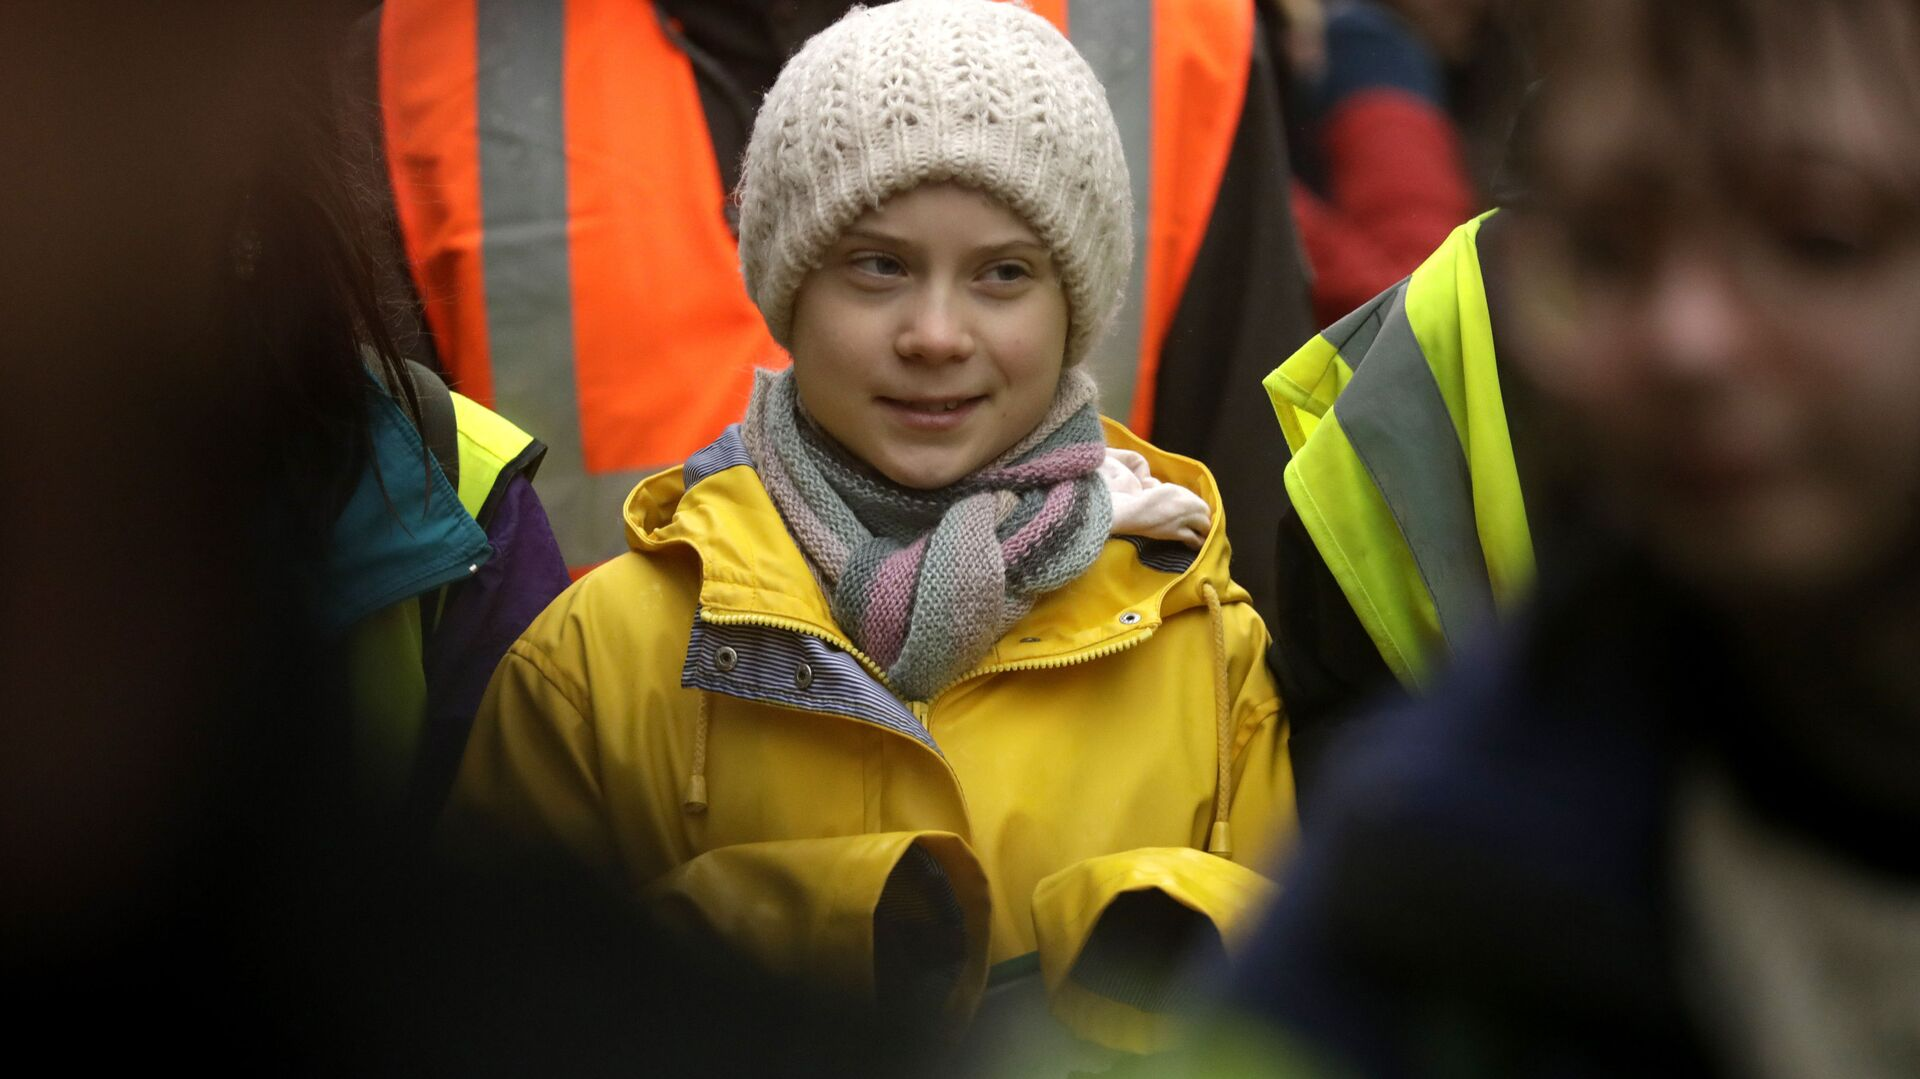 Climate activist Greta Thunberg, from Sweden marches with other demonstrators as she participates in a school strike climate protest in Bristol, south west England, Friday, Feb. 28, 2020. - Sputnik Italia, 1920, 12.07.2021